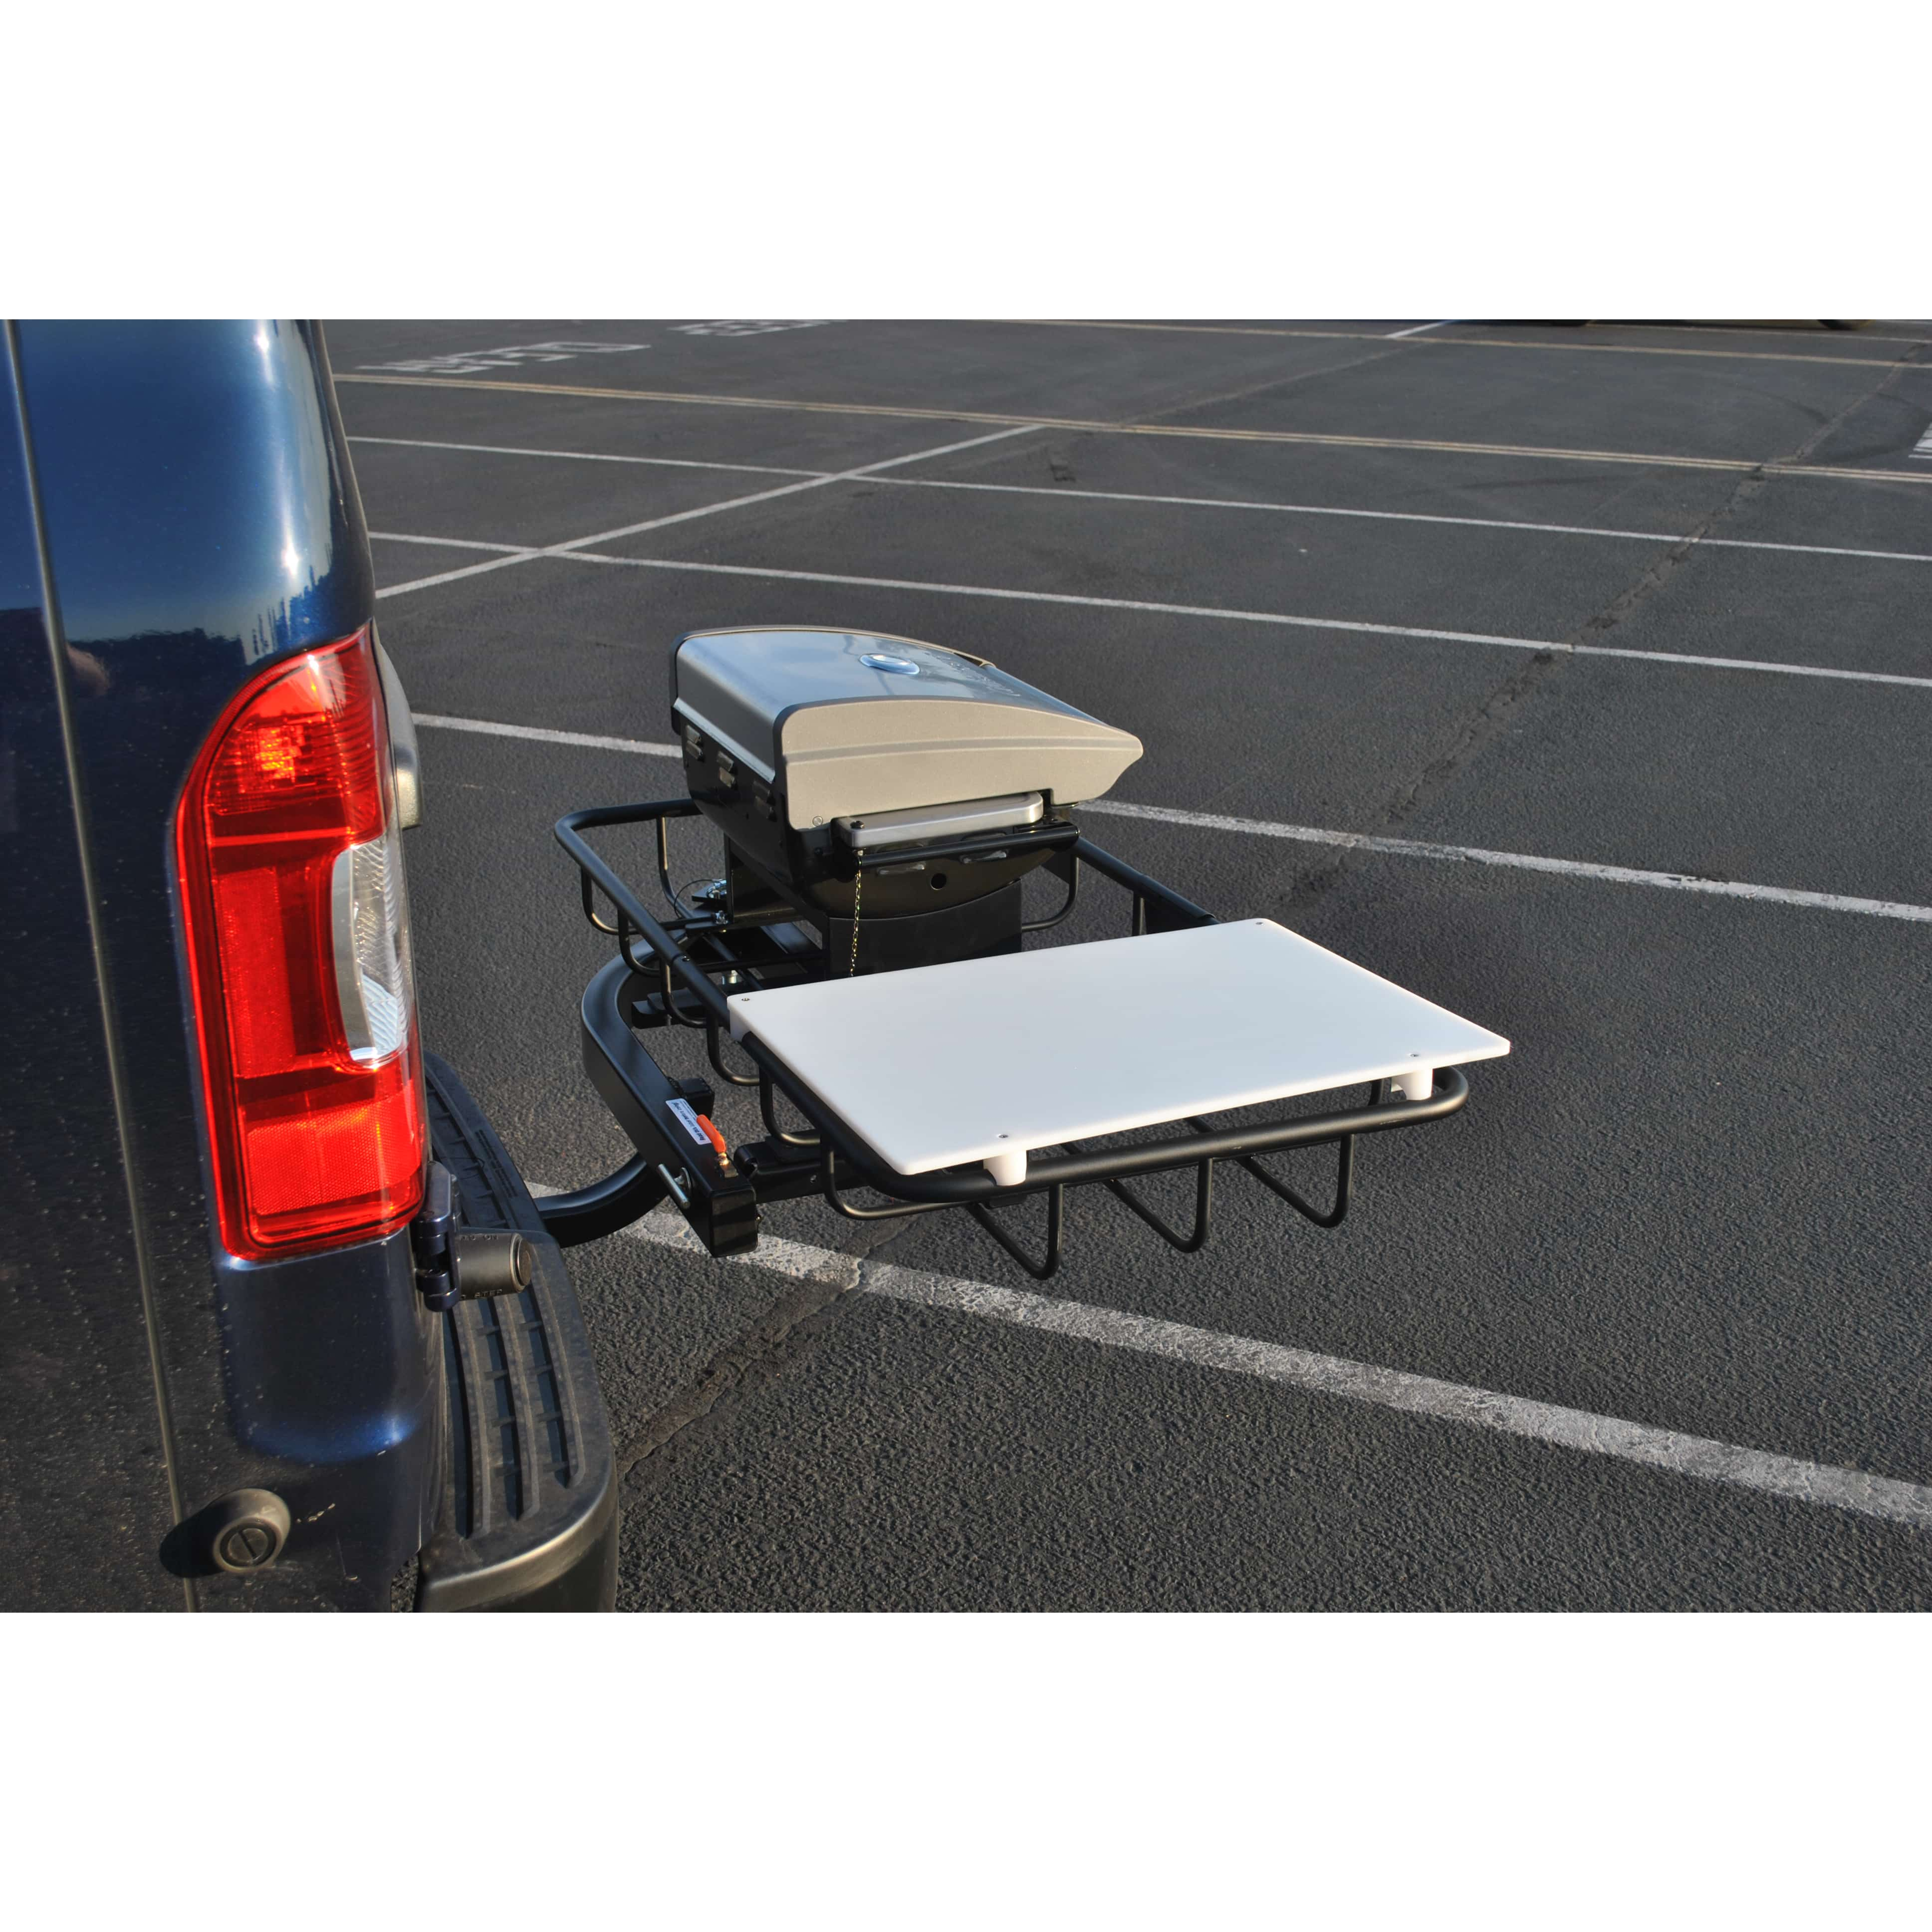 Trailer hitch grill station from StowAway